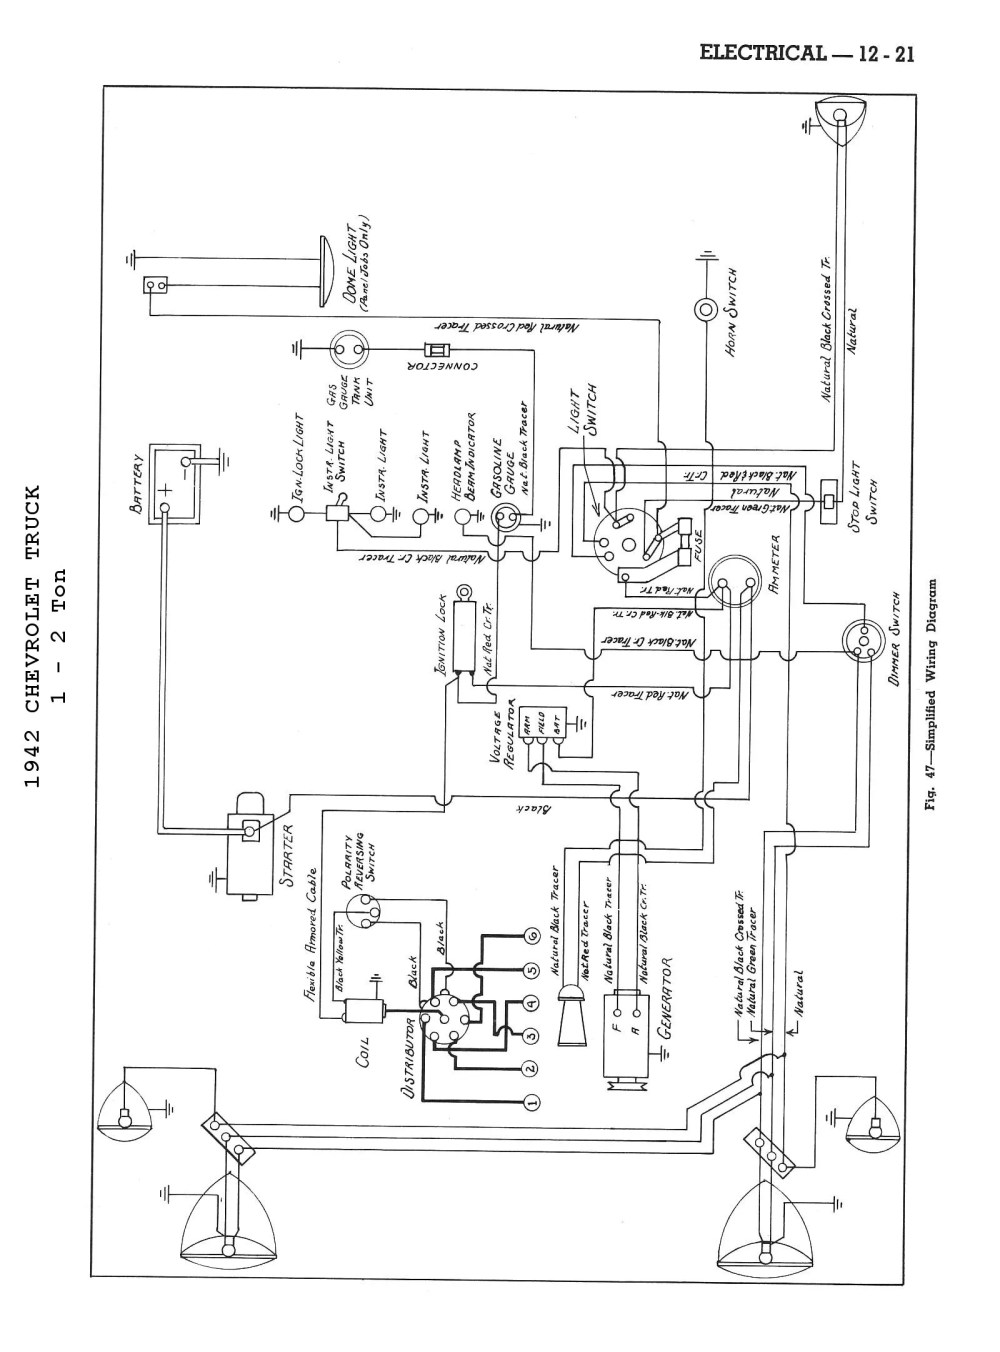 medium resolution of 57 chevy horn wiring diagram schematic wiring diagrams 1957 chevy wiring harness diagram for horn